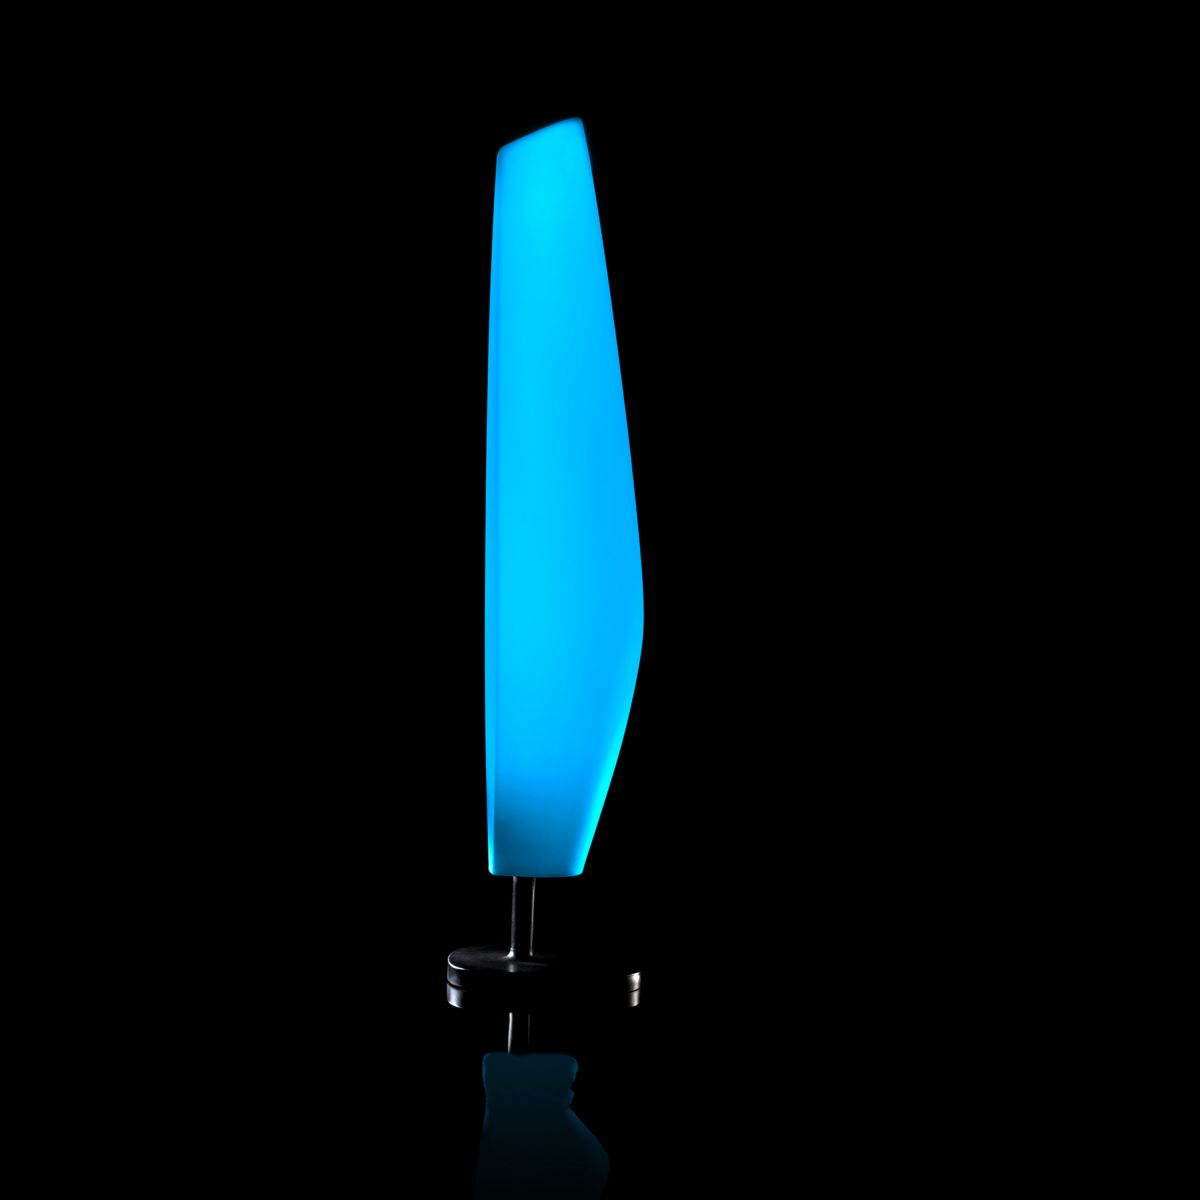 Lampe design vondom blanca led rgb lampes sur pieds for Lampe exterieur led design